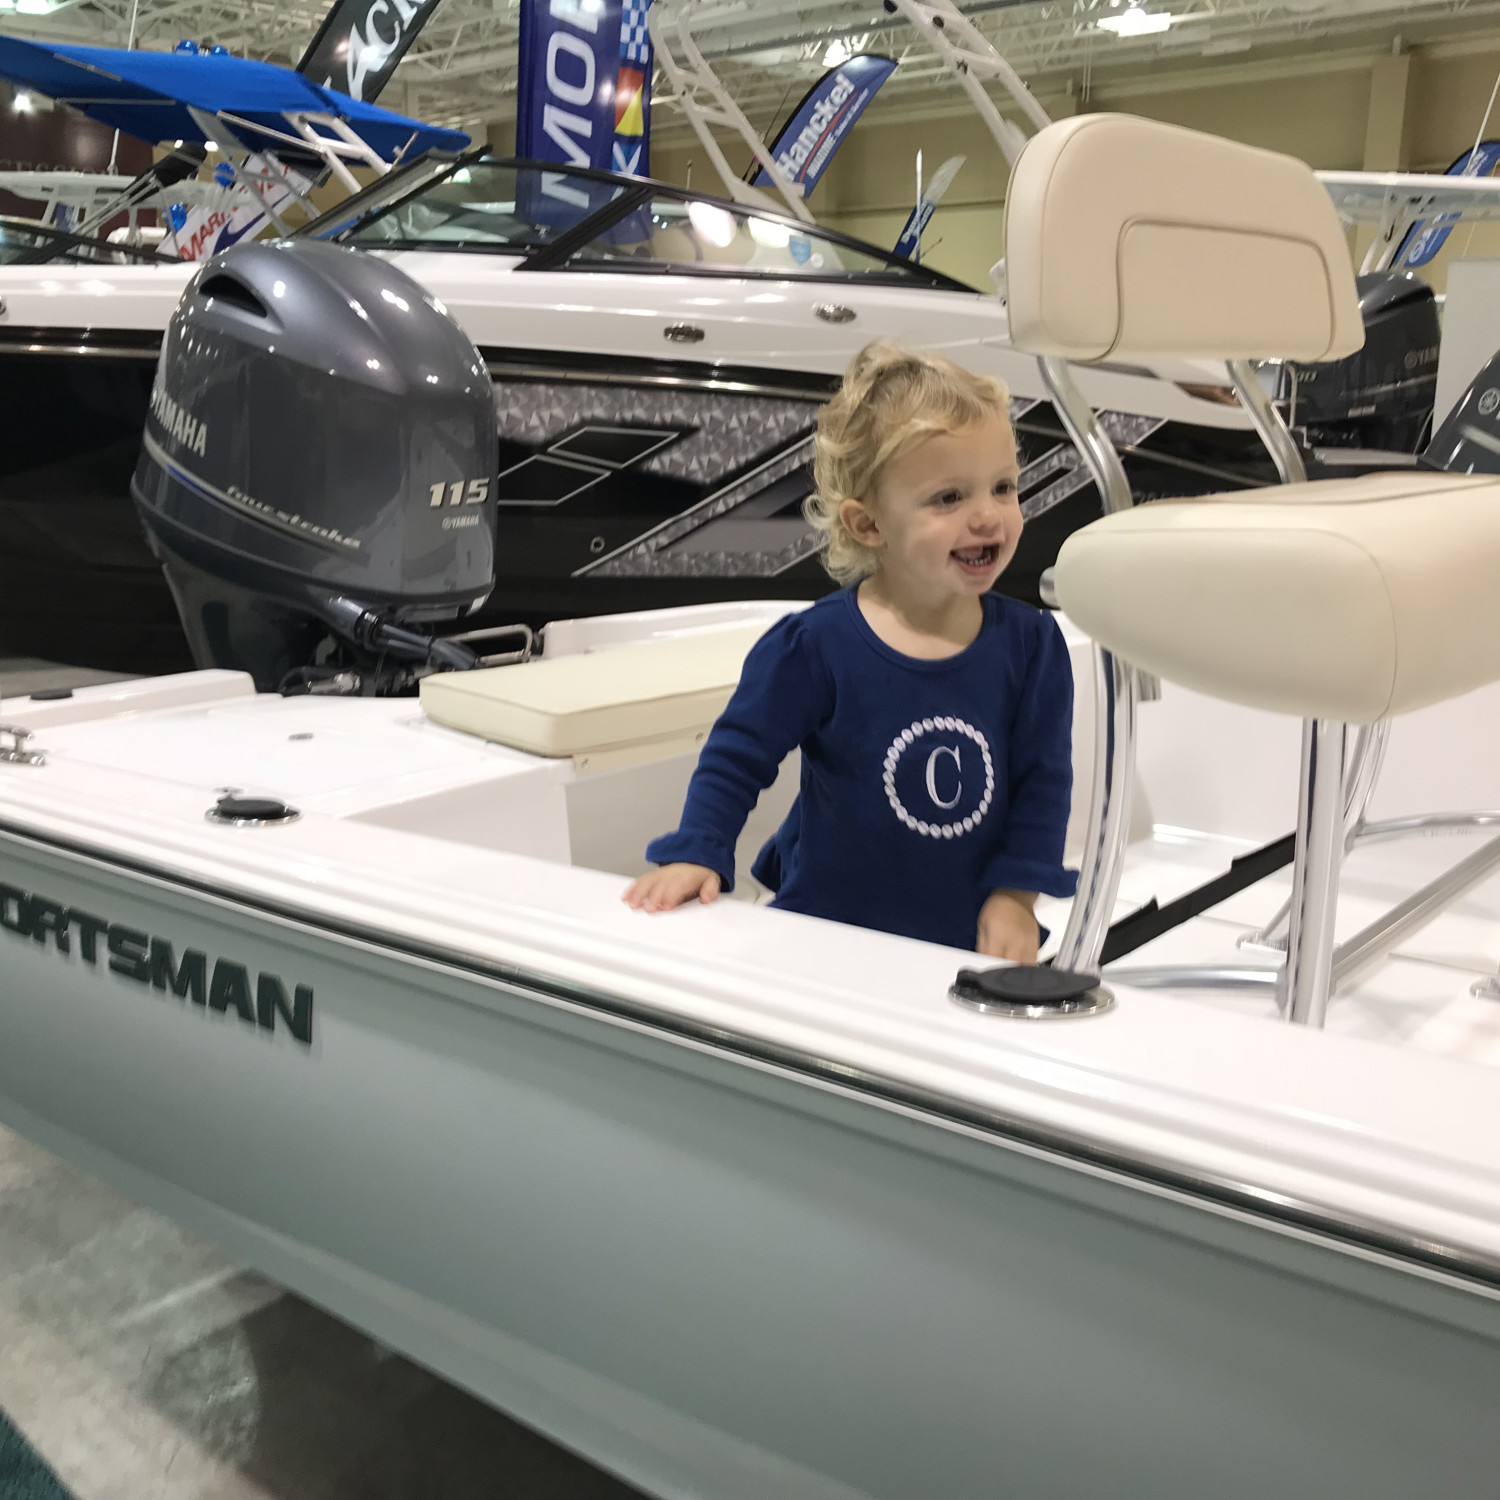 Title: Charleston Boat Show - On board their Sportsman Island Bay 18 Bay Boat - Location: Charleston, South Carolina. Participating in the Photo Contest #SportsmanFebruary2018